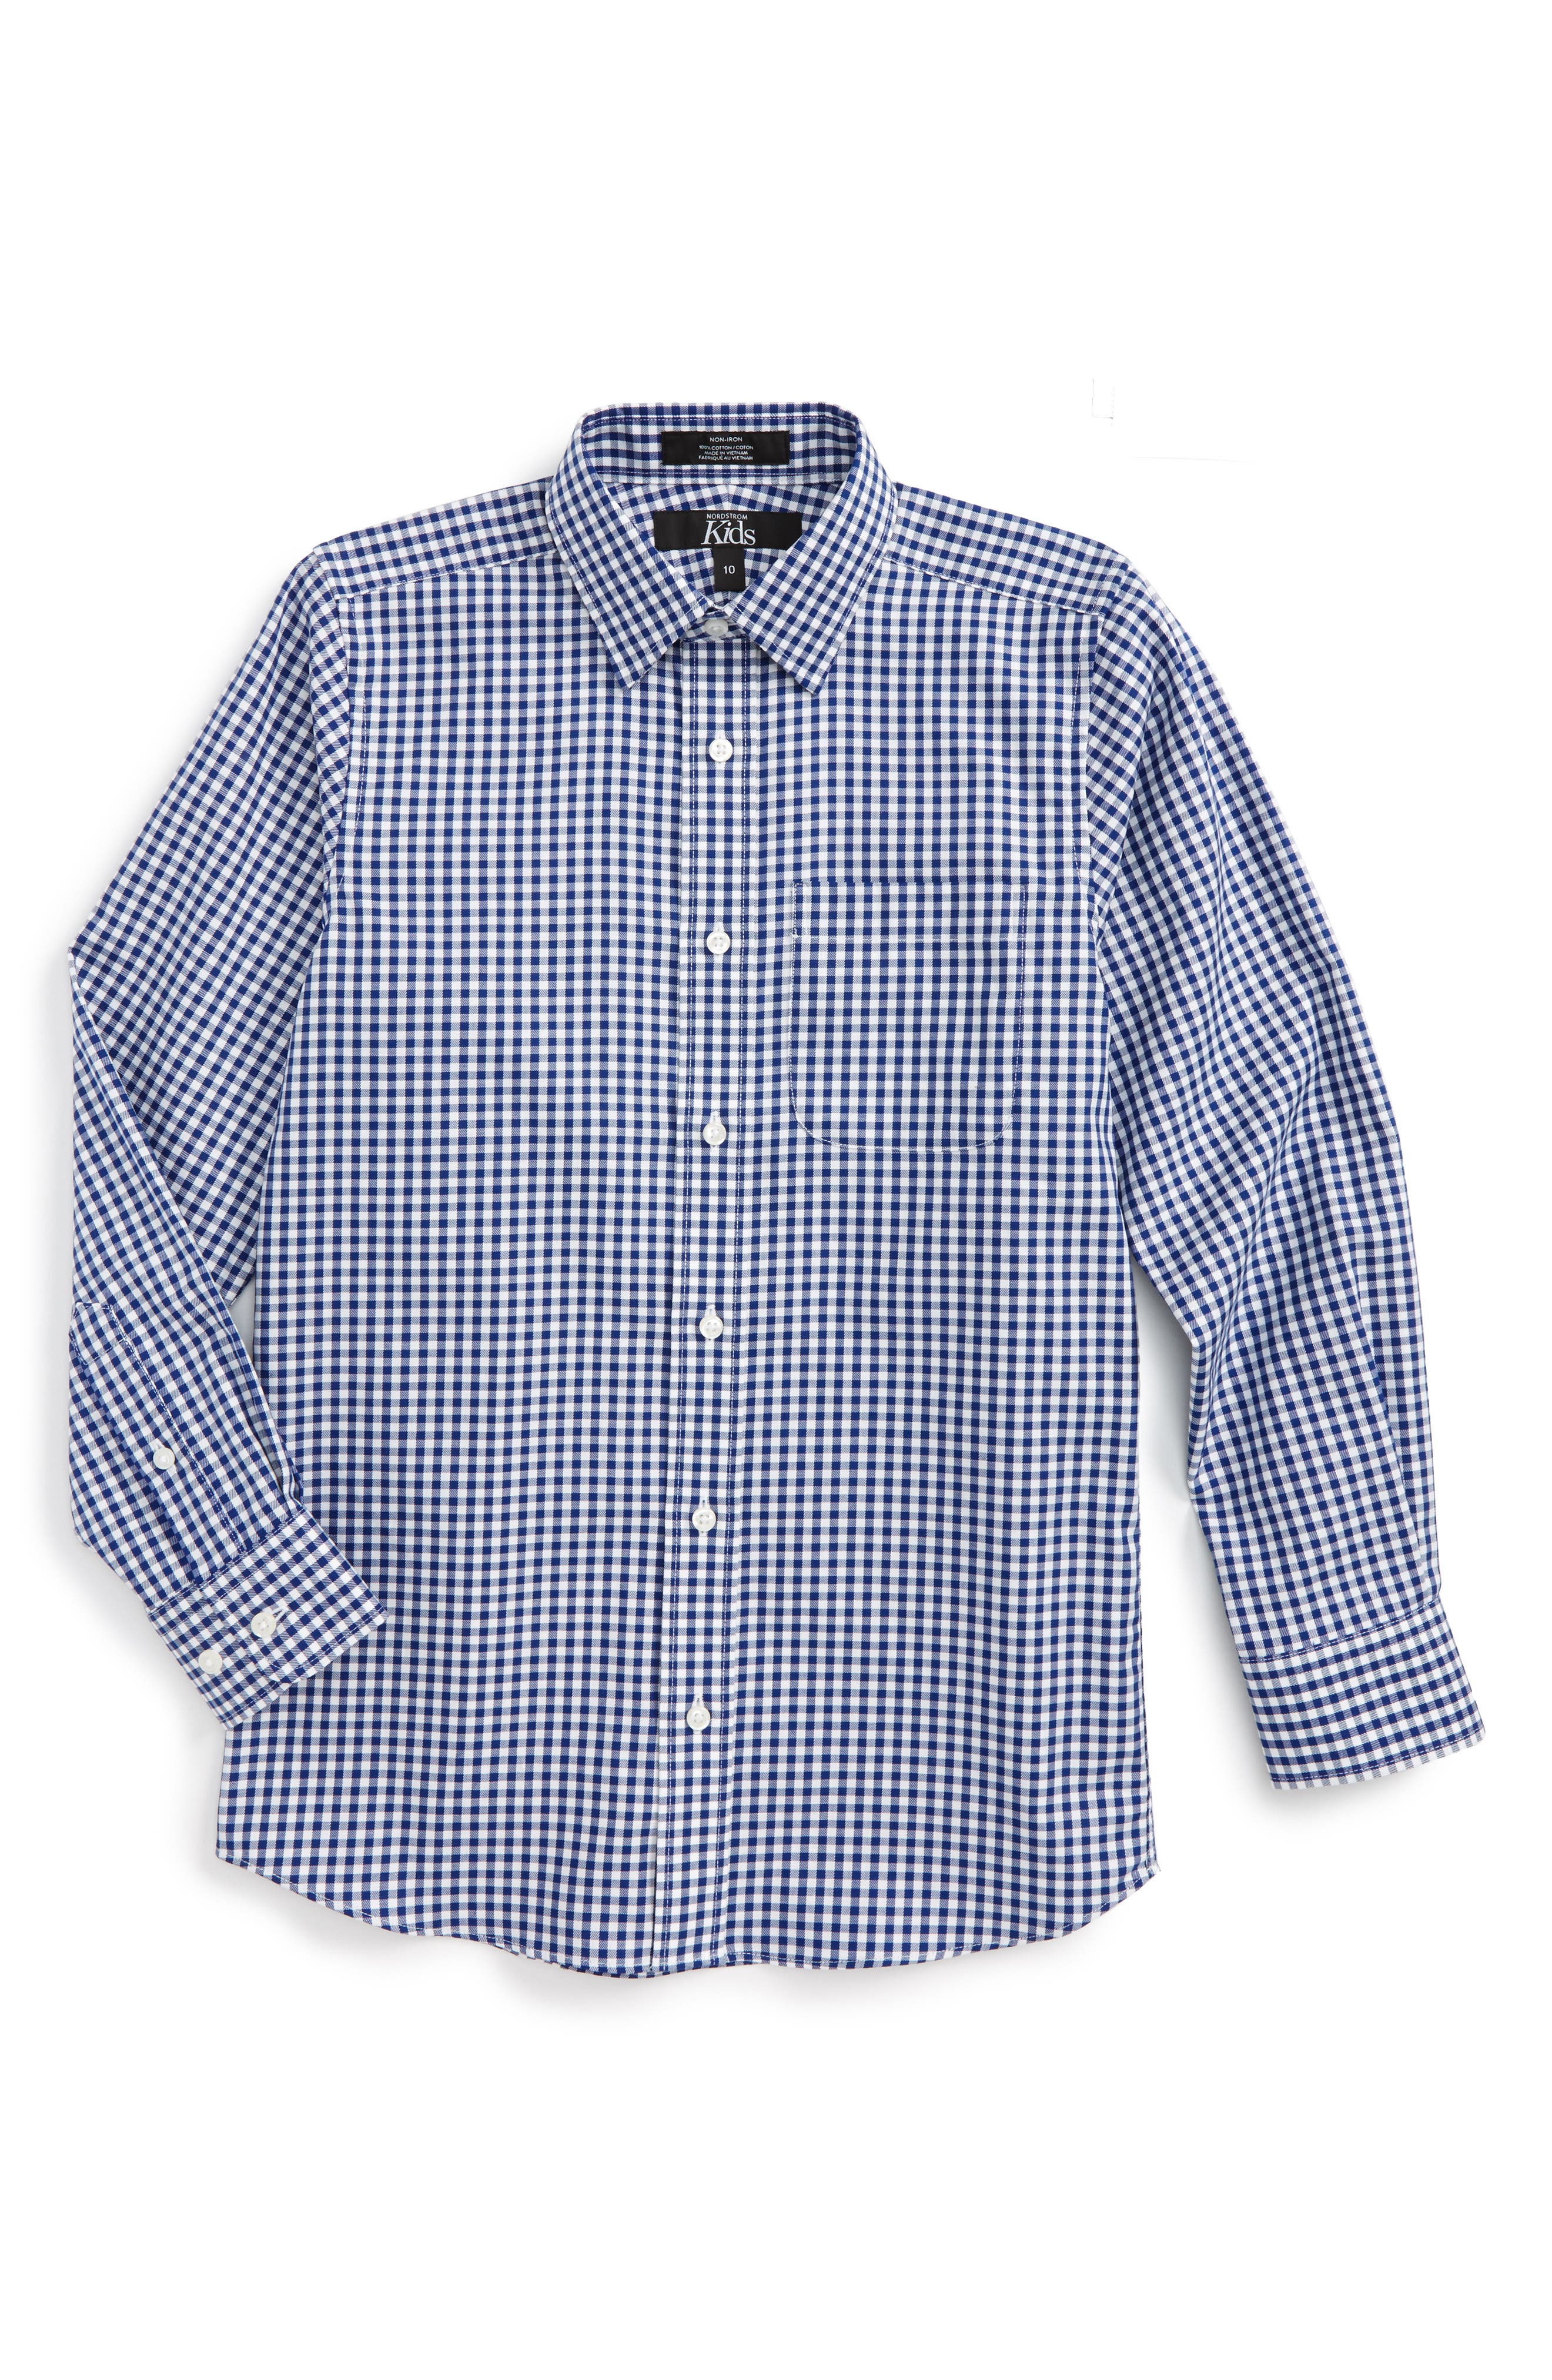 Nordstrom Non-Iron Check Dress Shirt (Big Boys)